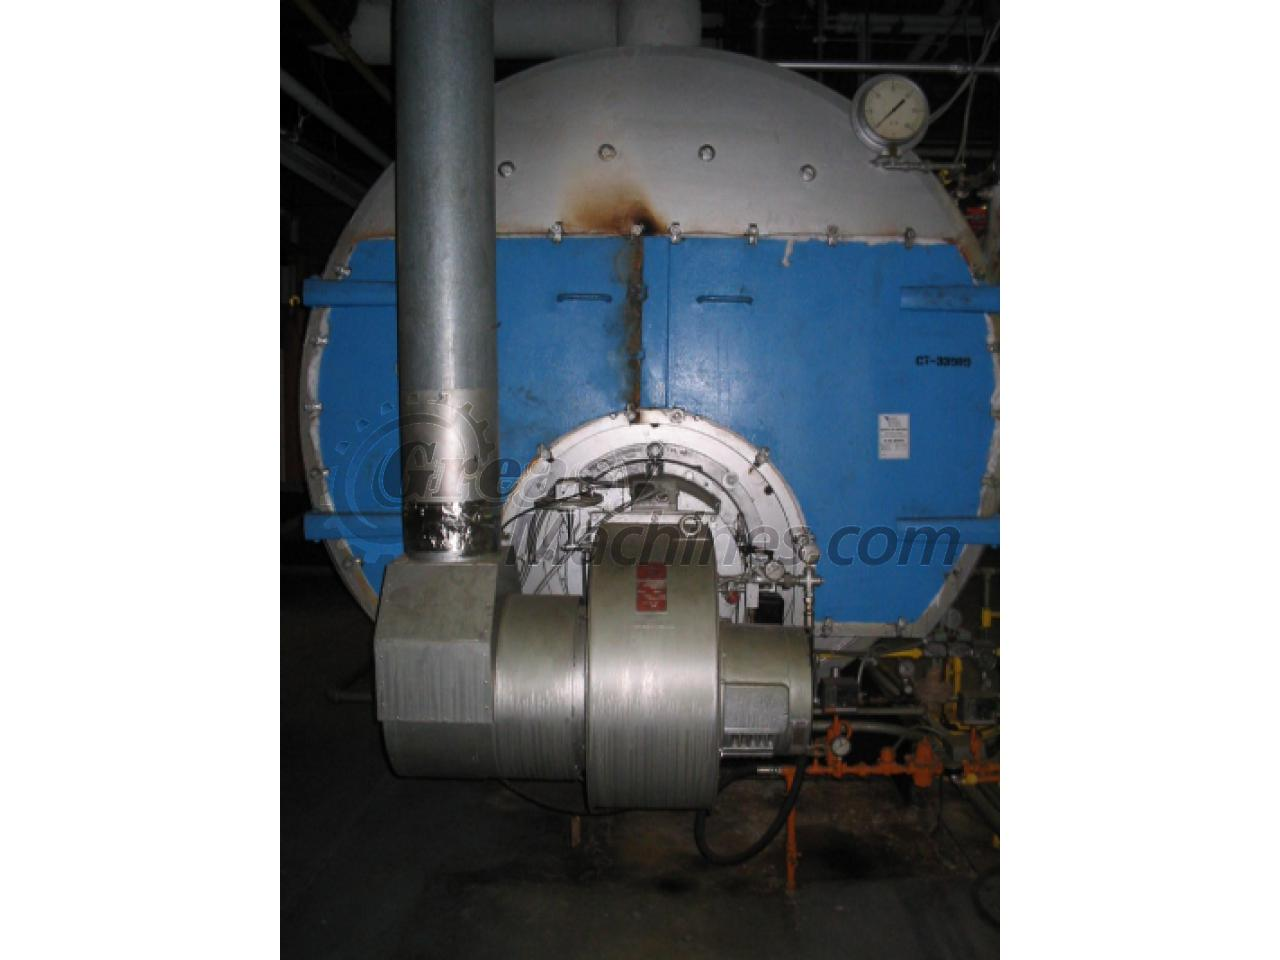 HP steam boiler., Used Machinery, Used Equipment, Financing, Leasing